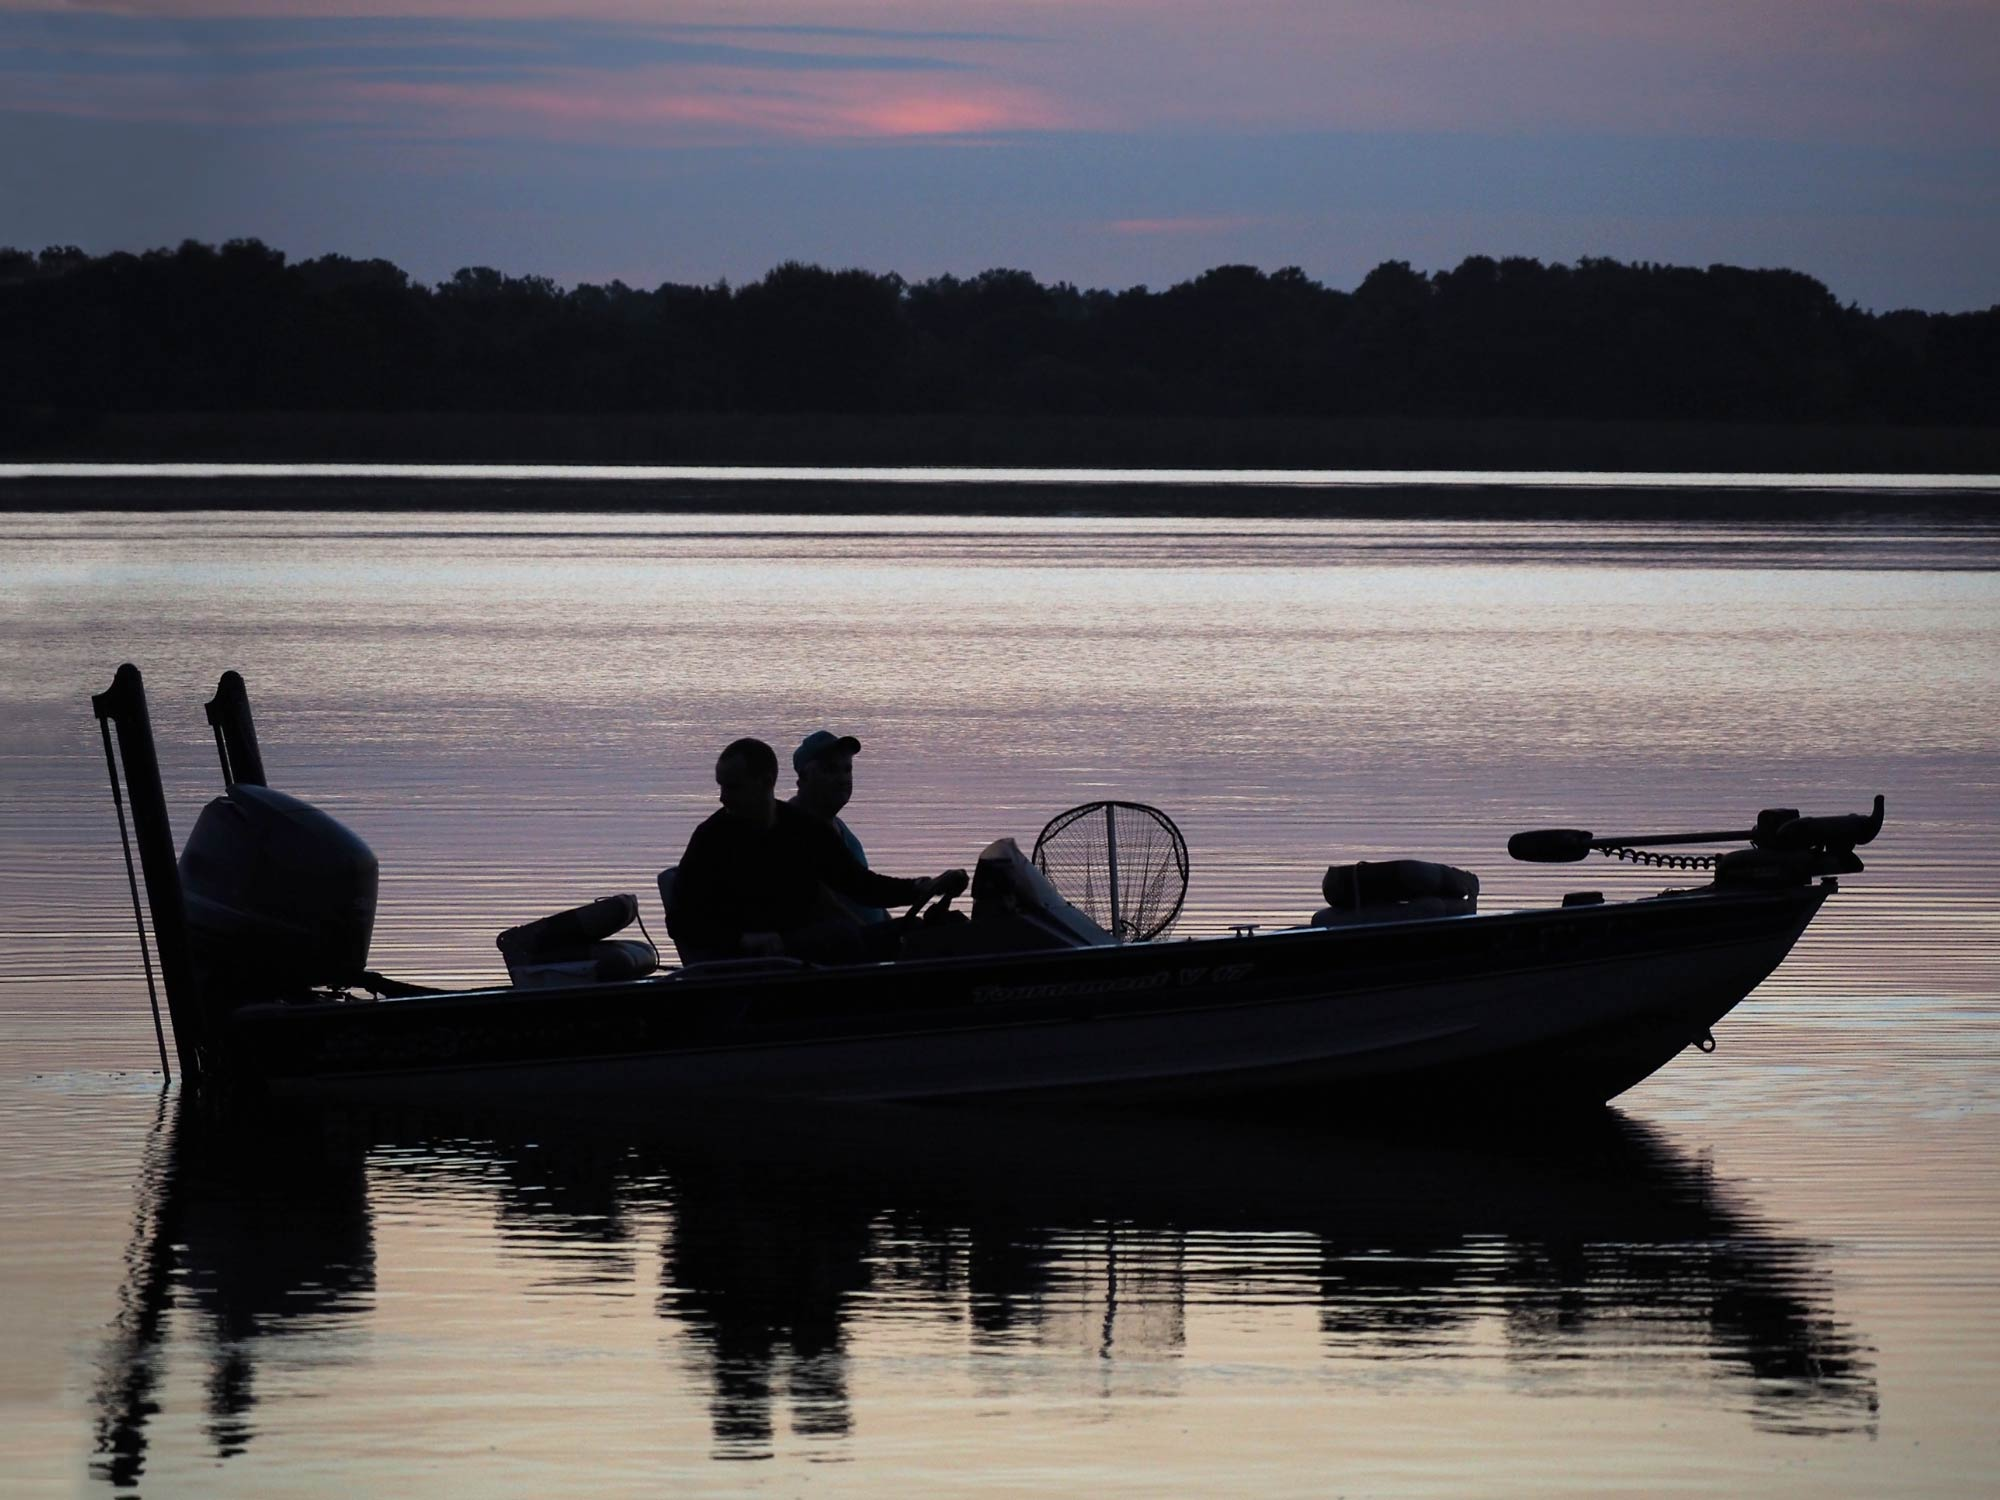 A pair of anglers on the water before the sunrise